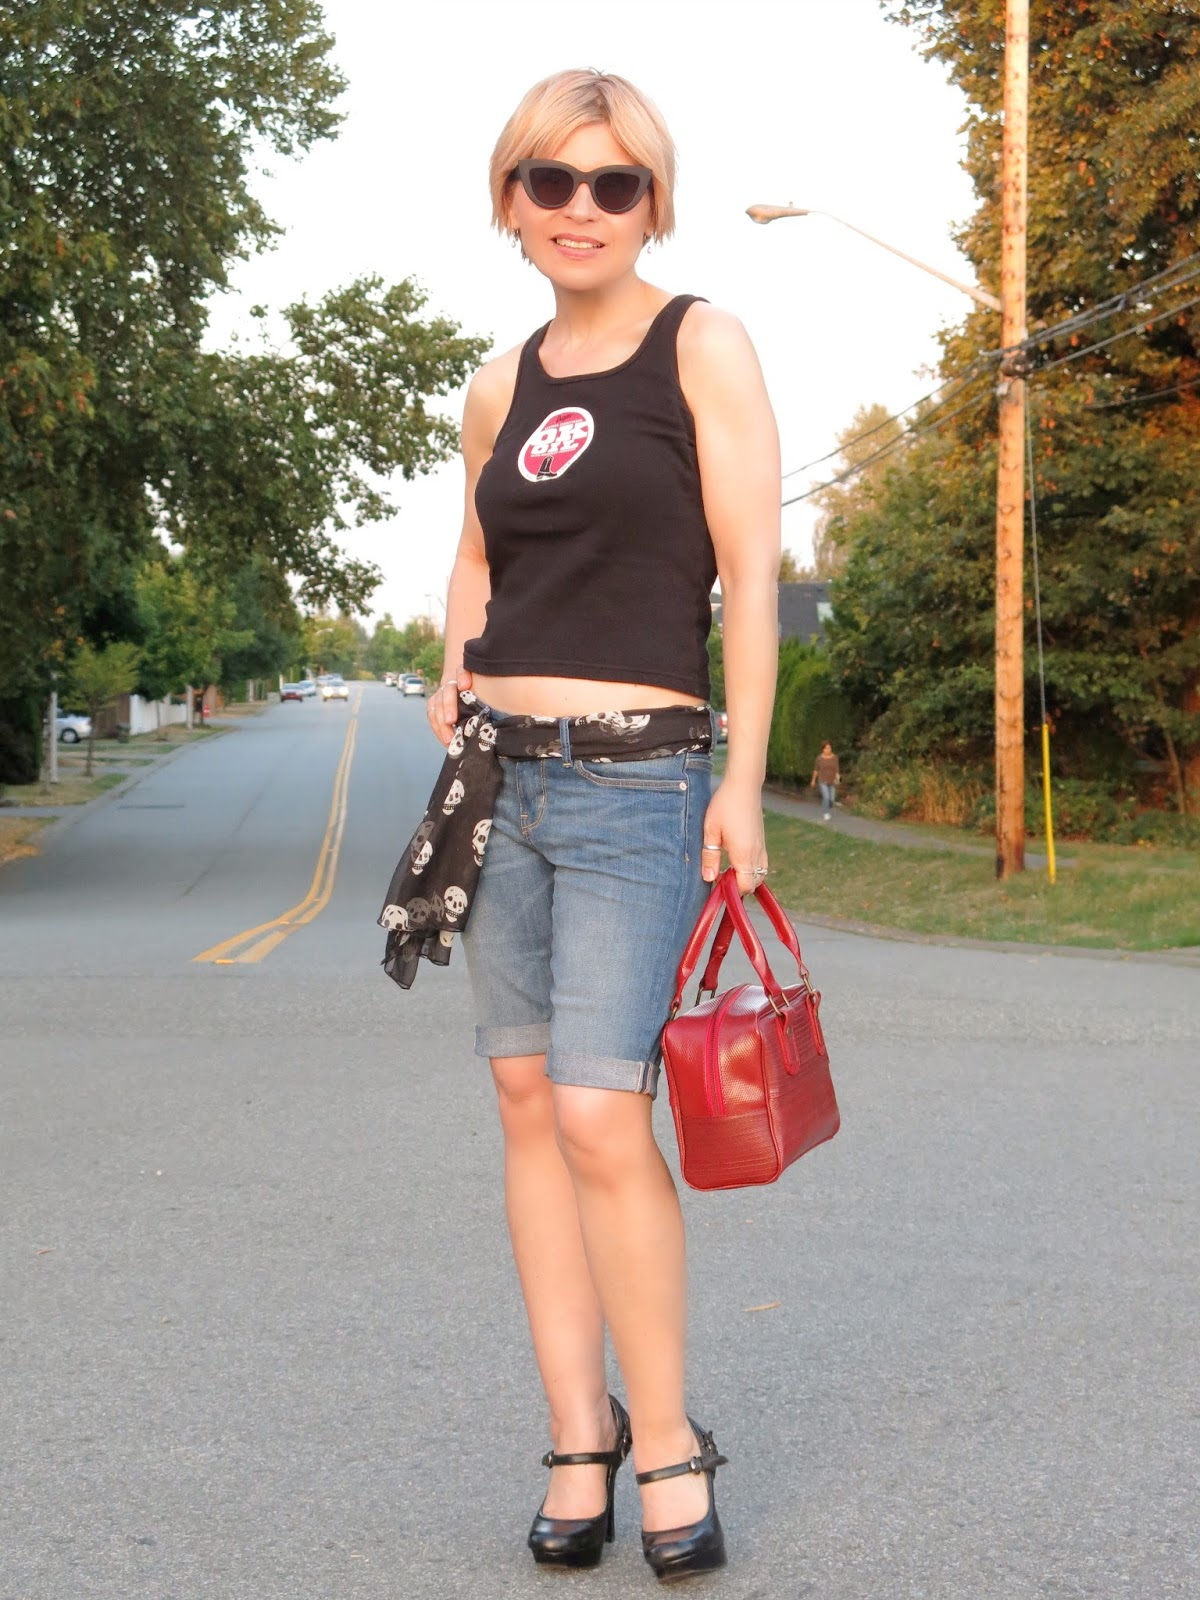 styling denim bermuda shorts with platform mary-jane shoes, a scull-print scarf, and cat-eye sunglasses